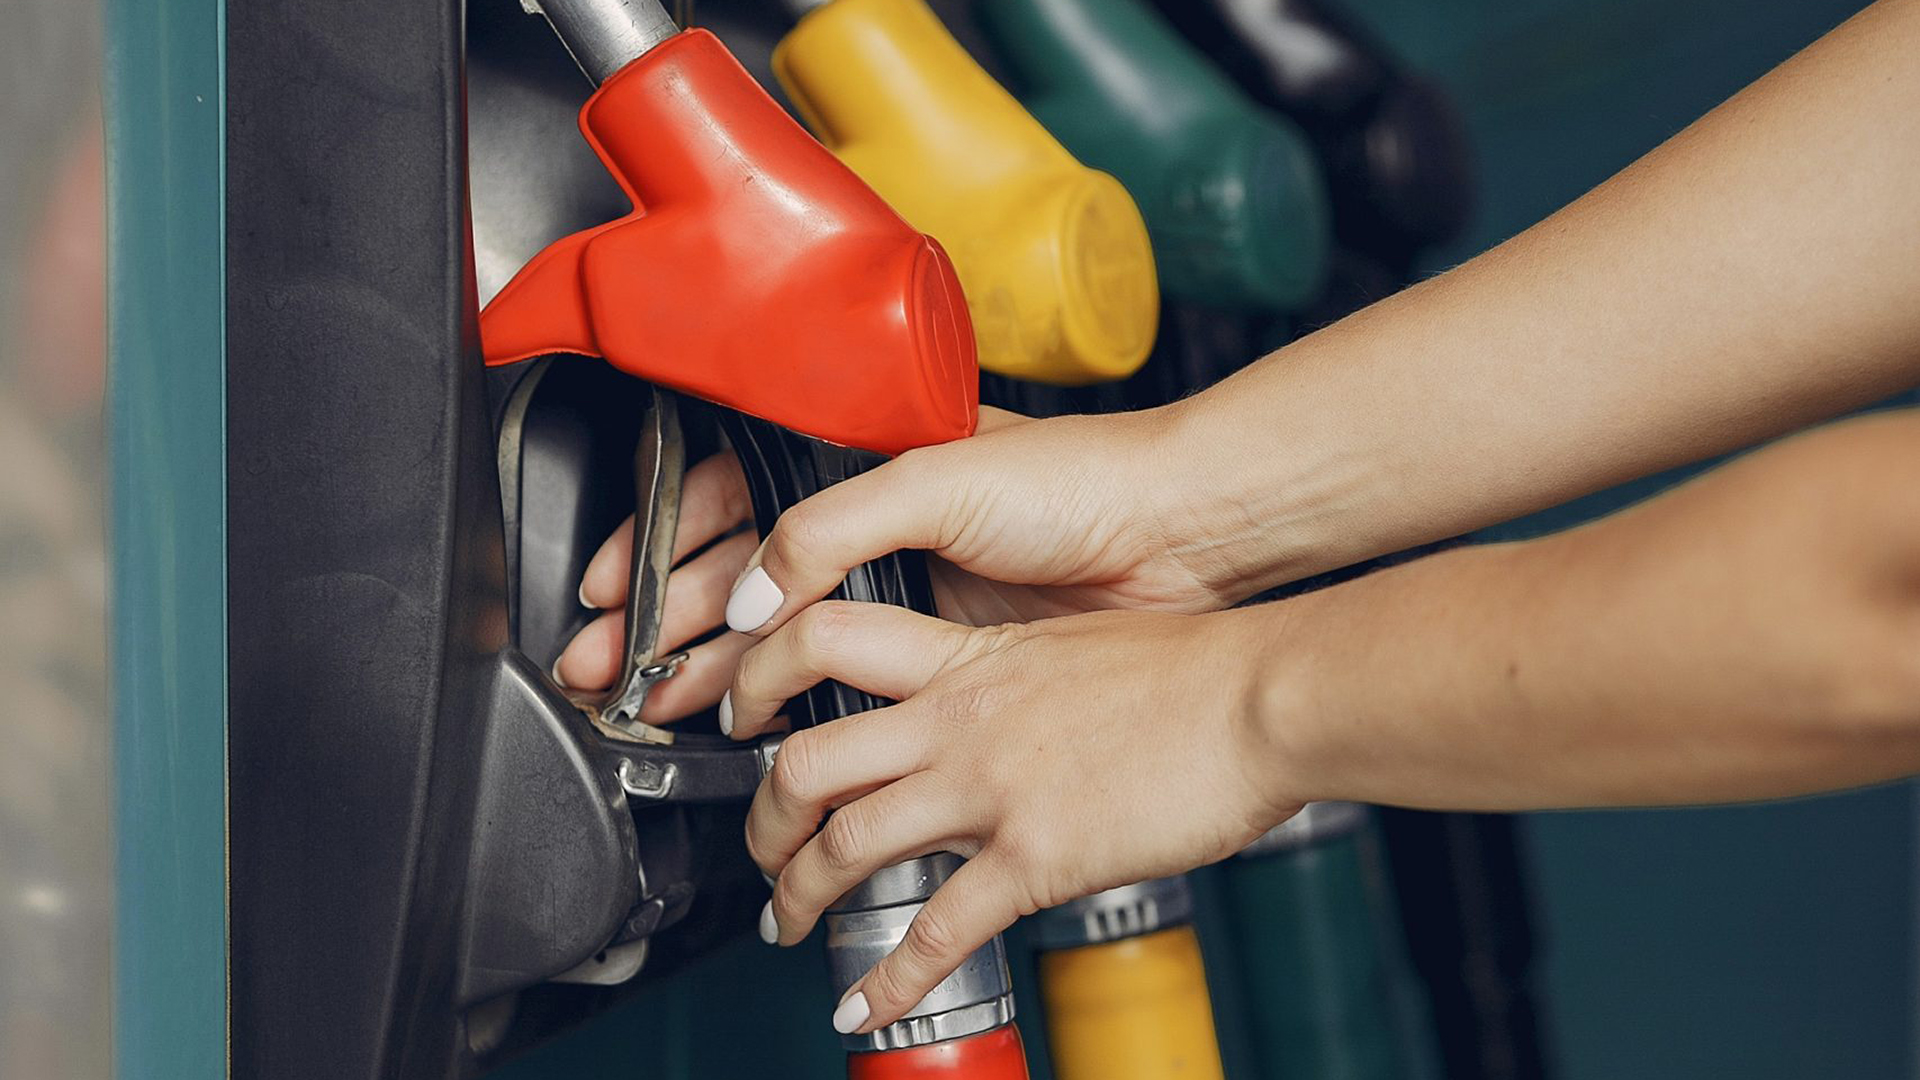 The Automobile Association predicts a significant rise in the price of petrol, diesel and illuminating paraffin for the first week of August 2021. Photo: Supplied/Food For Mzansi